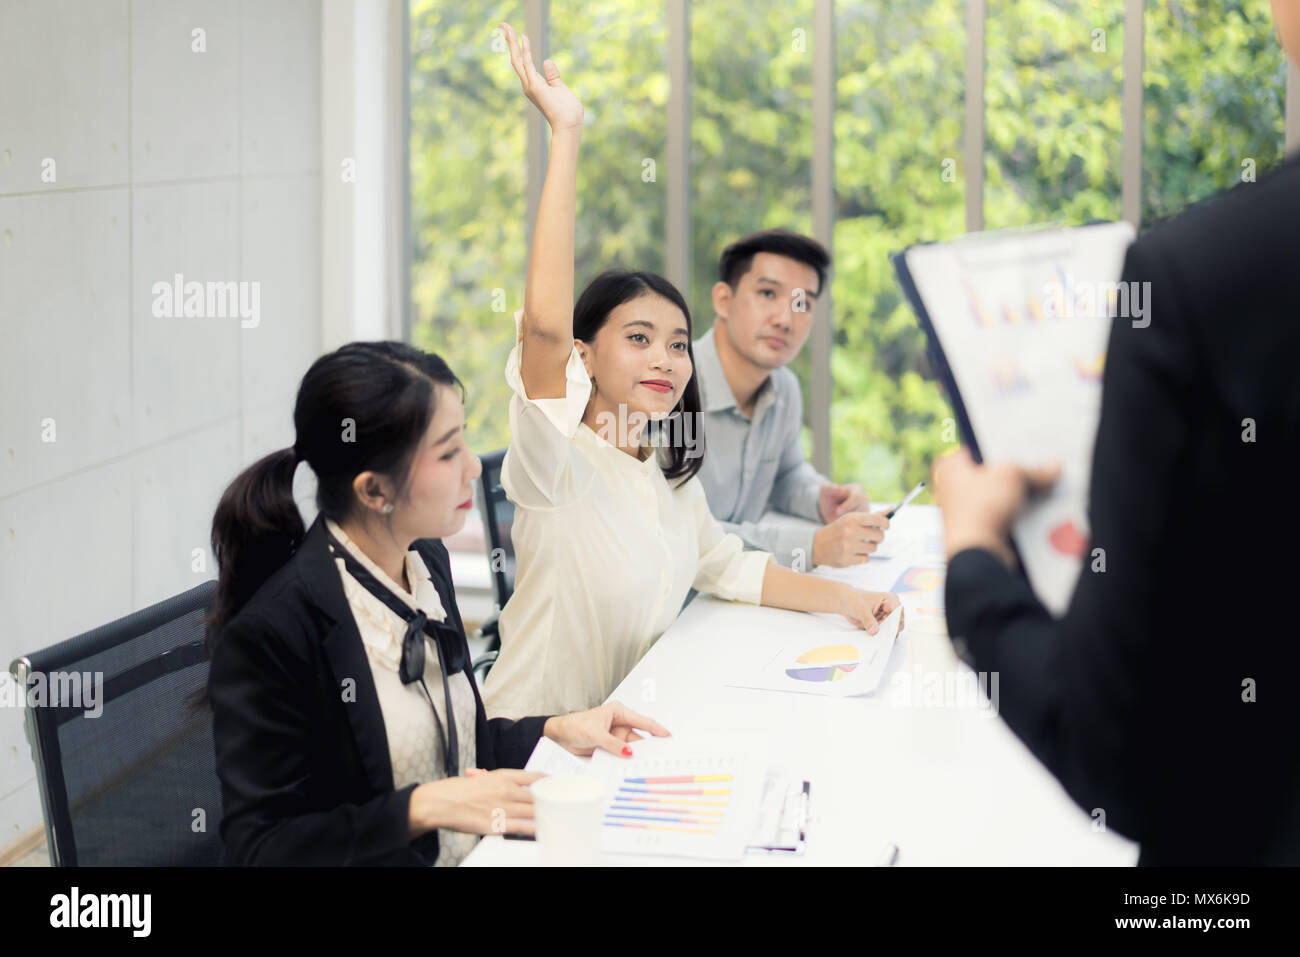 Asian woman is raising her hands has question while businessman presentation about business sale report at the meeting room - Stock Image